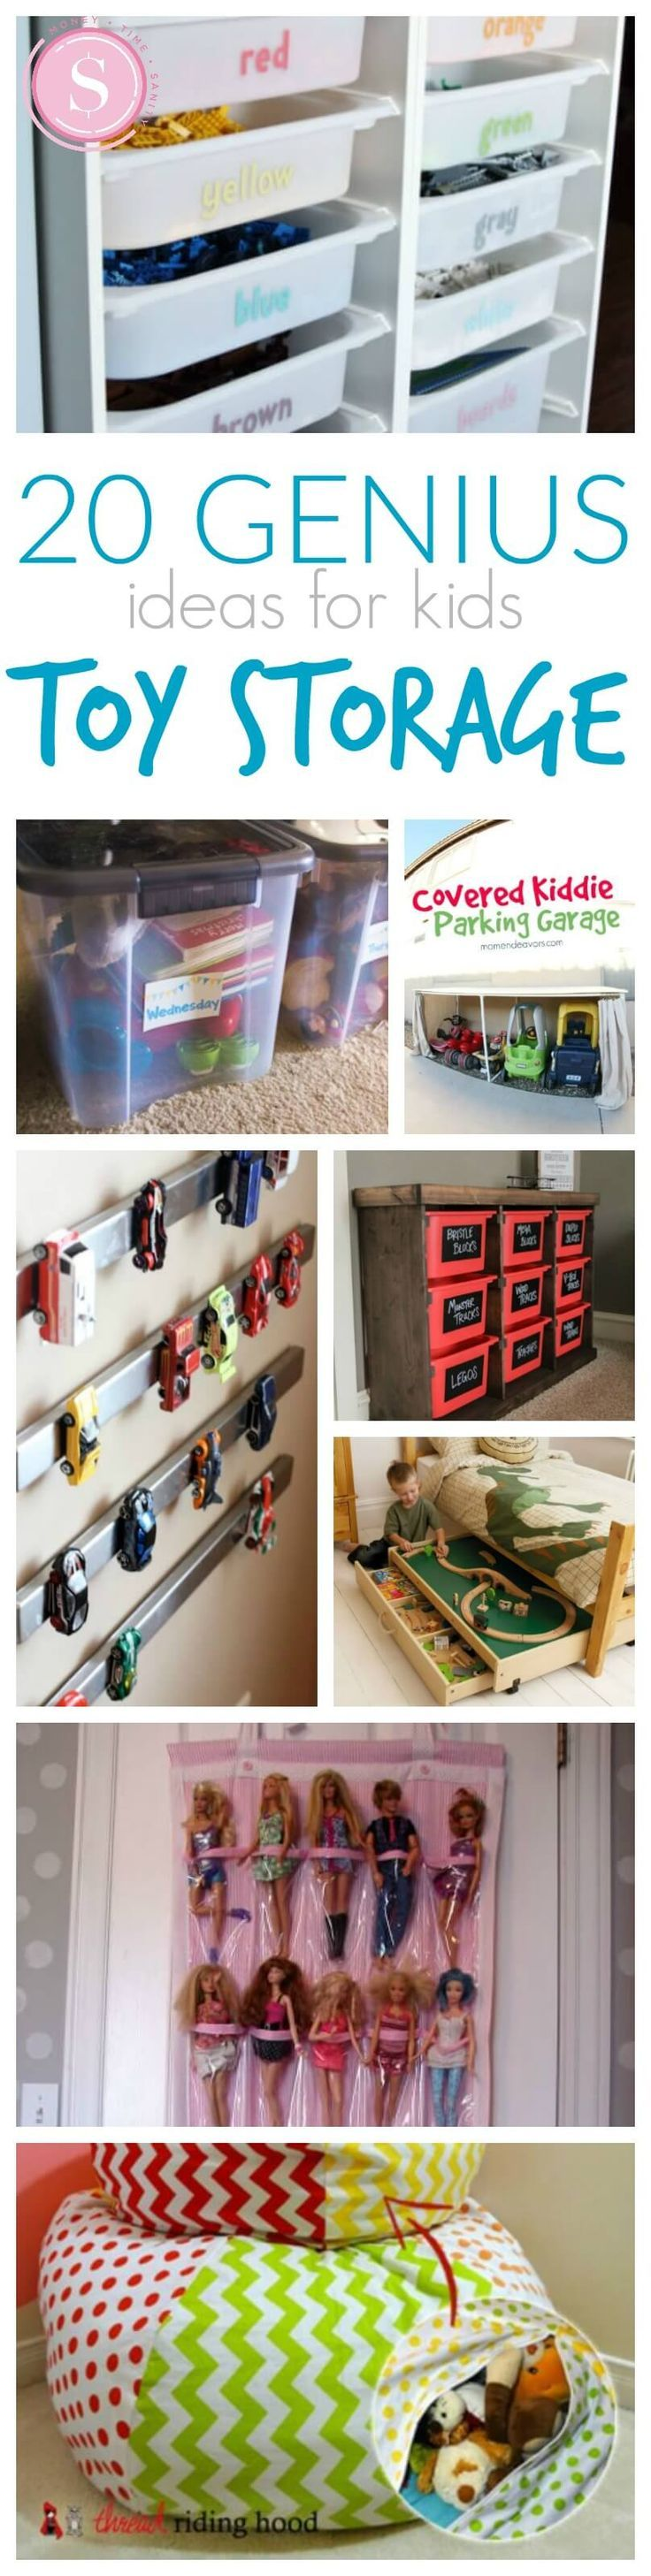 20 Genius Ideas for Organizing Your Kid's Rooms! Great tips and tricks for Spring Cleaning!